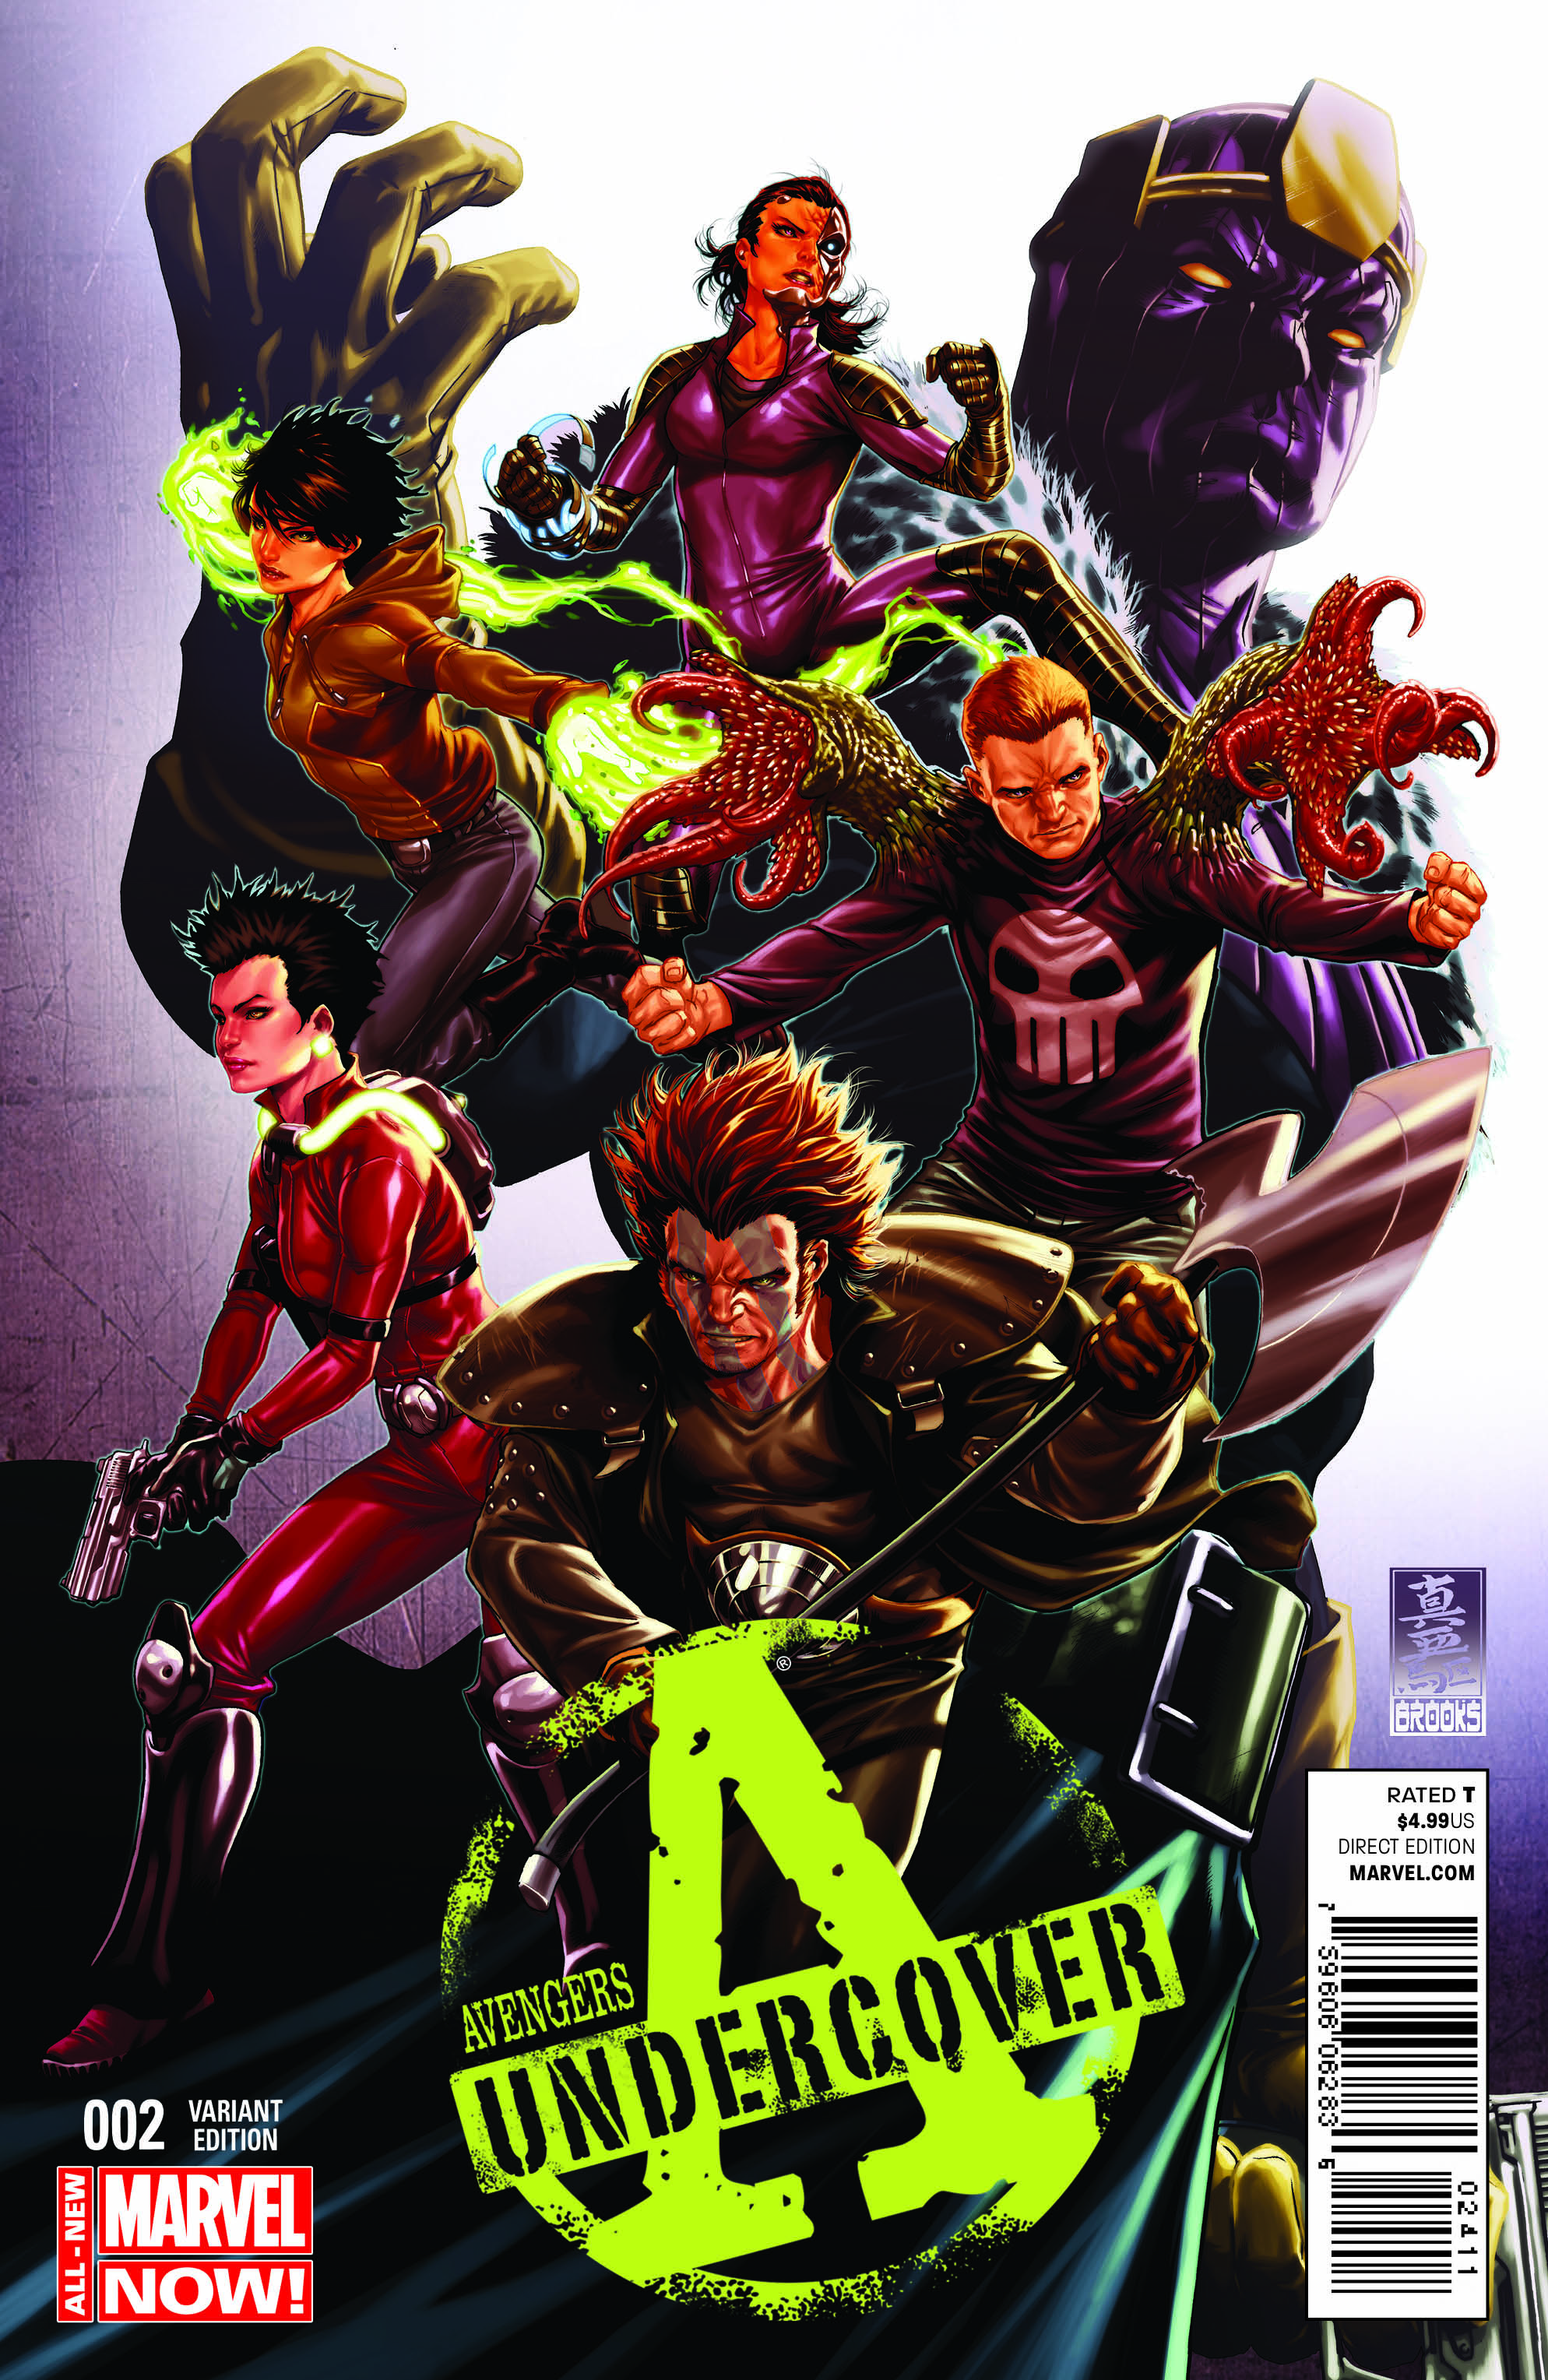 AVENGERS UNDERCOVER #1 First Look